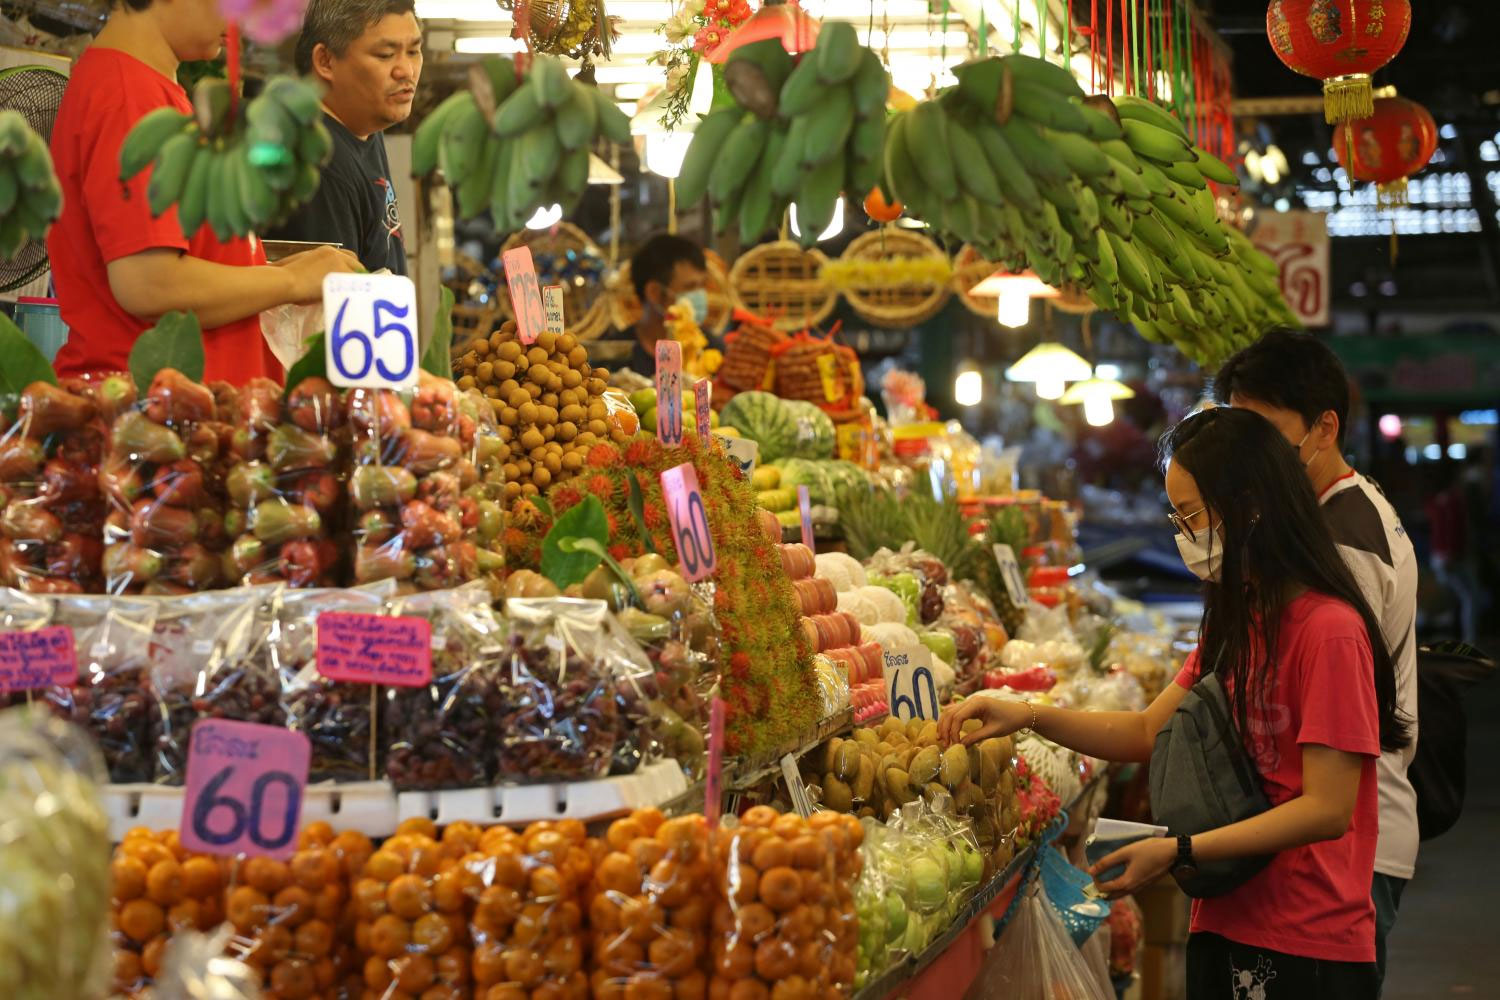 Shoppers wear masks while browsing produce at a grocery stall in Min Buri. (Photo by Varuth Hirunyatheb)